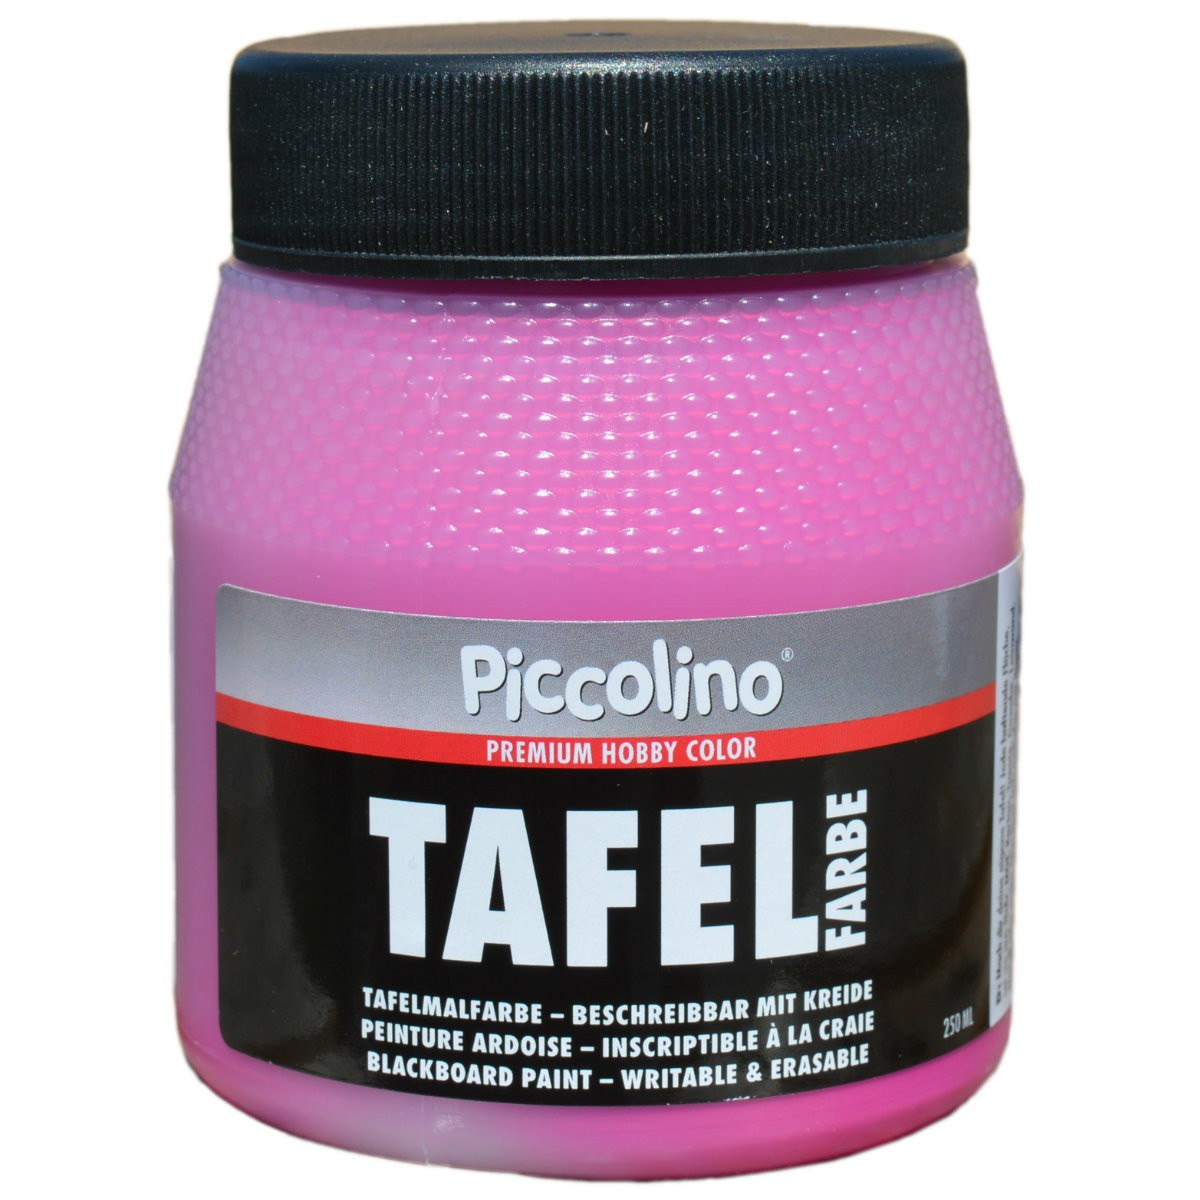 tafelfarbe pink 250ml piccolino tafellack bunt f r holz karton wand. Black Bedroom Furniture Sets. Home Design Ideas